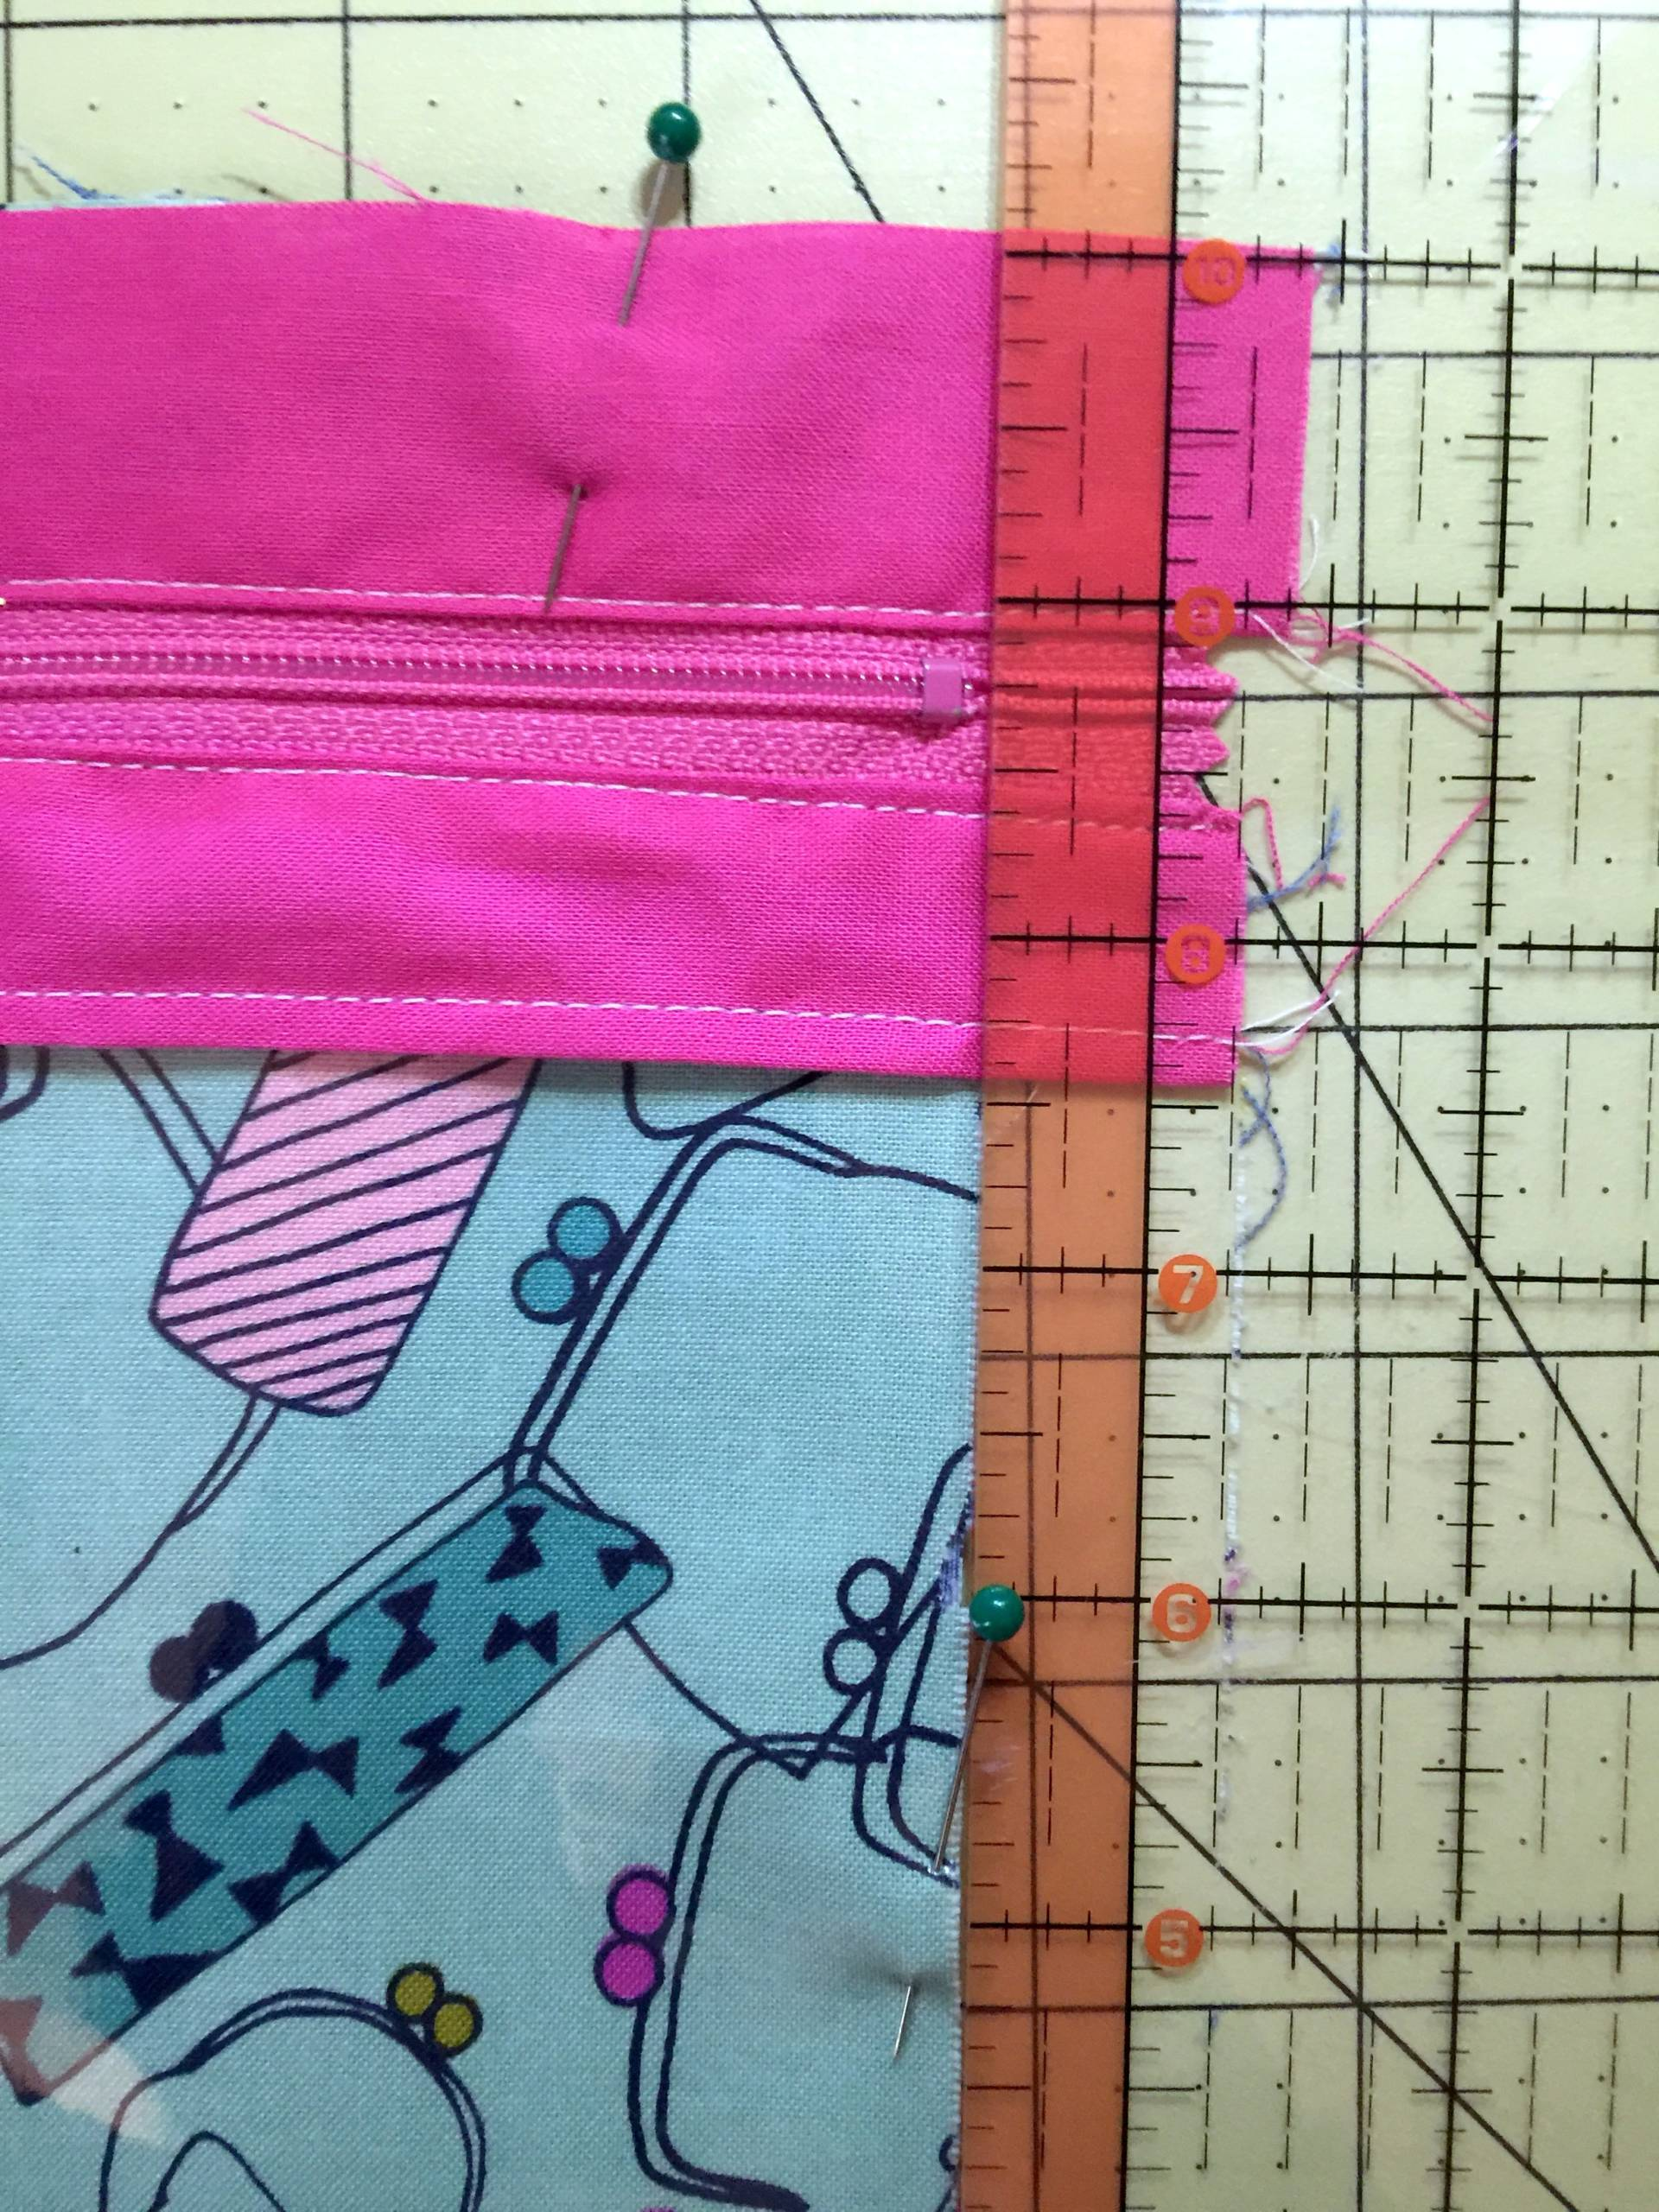 Vinyl Zip Pouch trimming the zipper to the width of the pouch